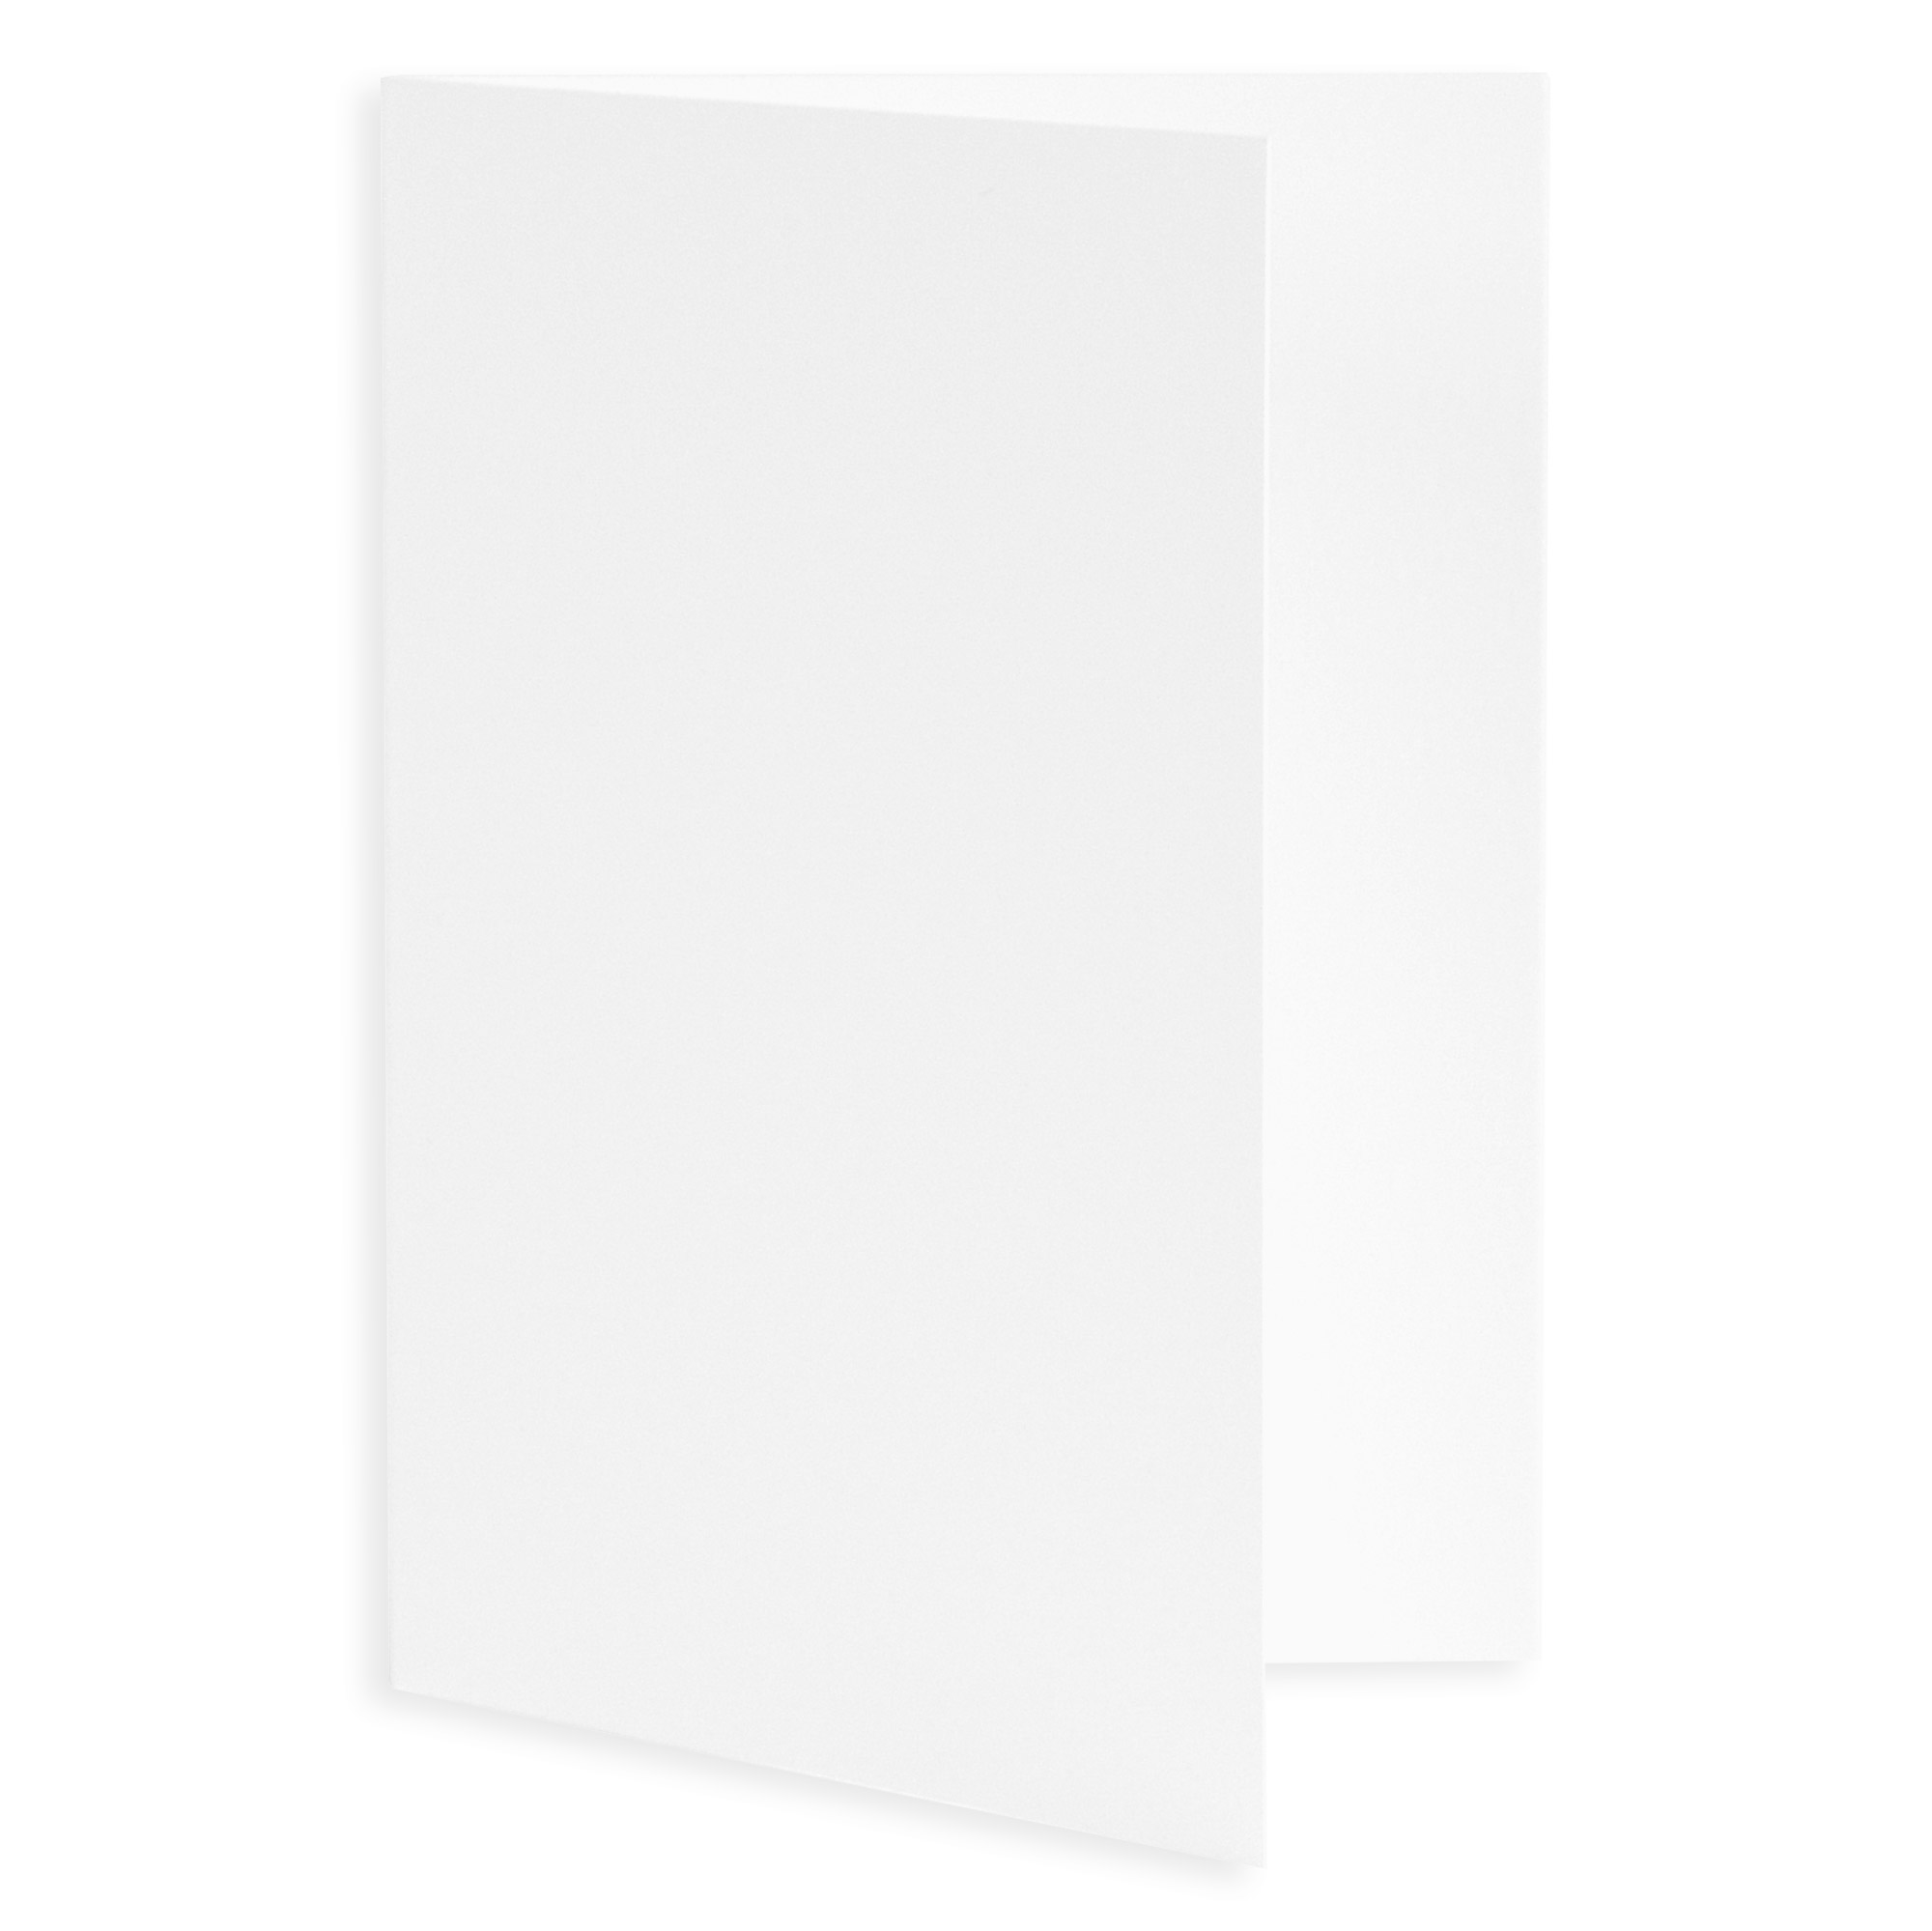 Plain Blank Wedding Invitation Fold - Radiant White (50 Pack)